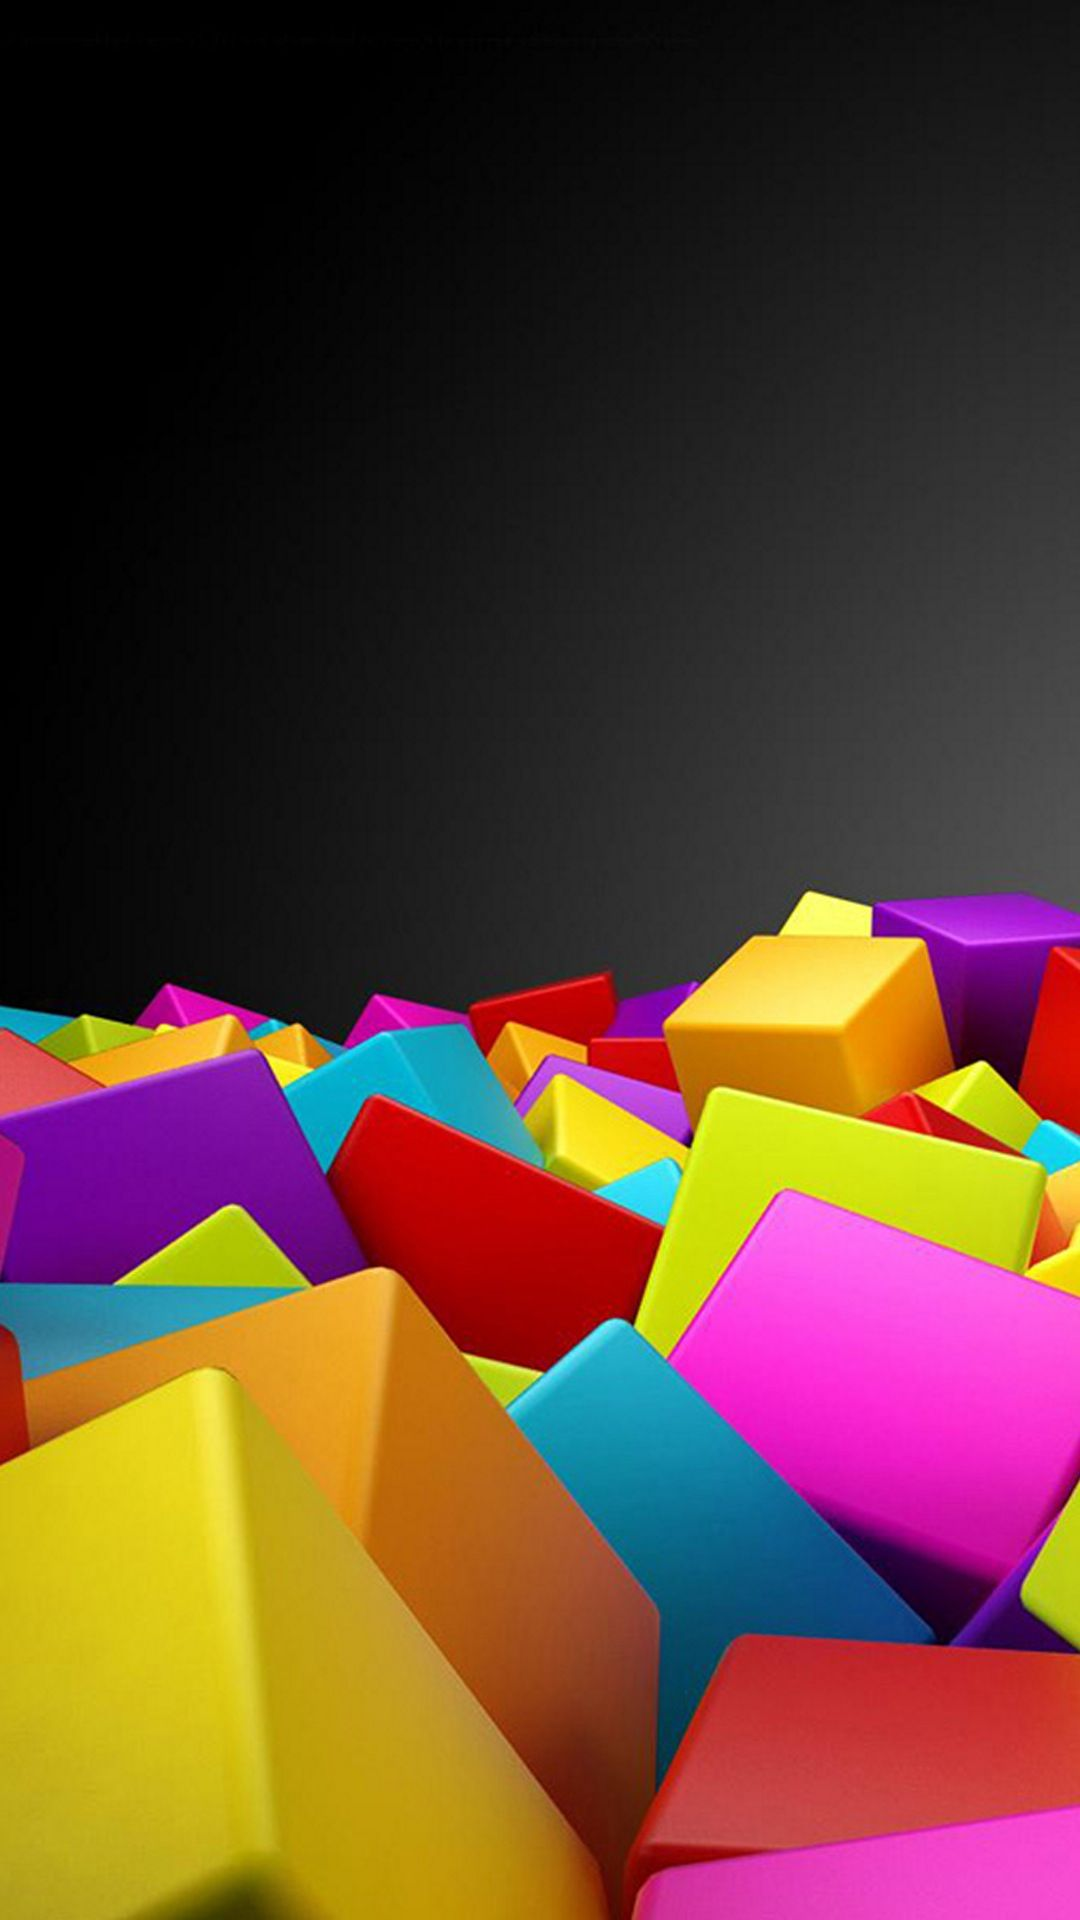 3d Colorful Images Hupages Download Iphone Wallpapers